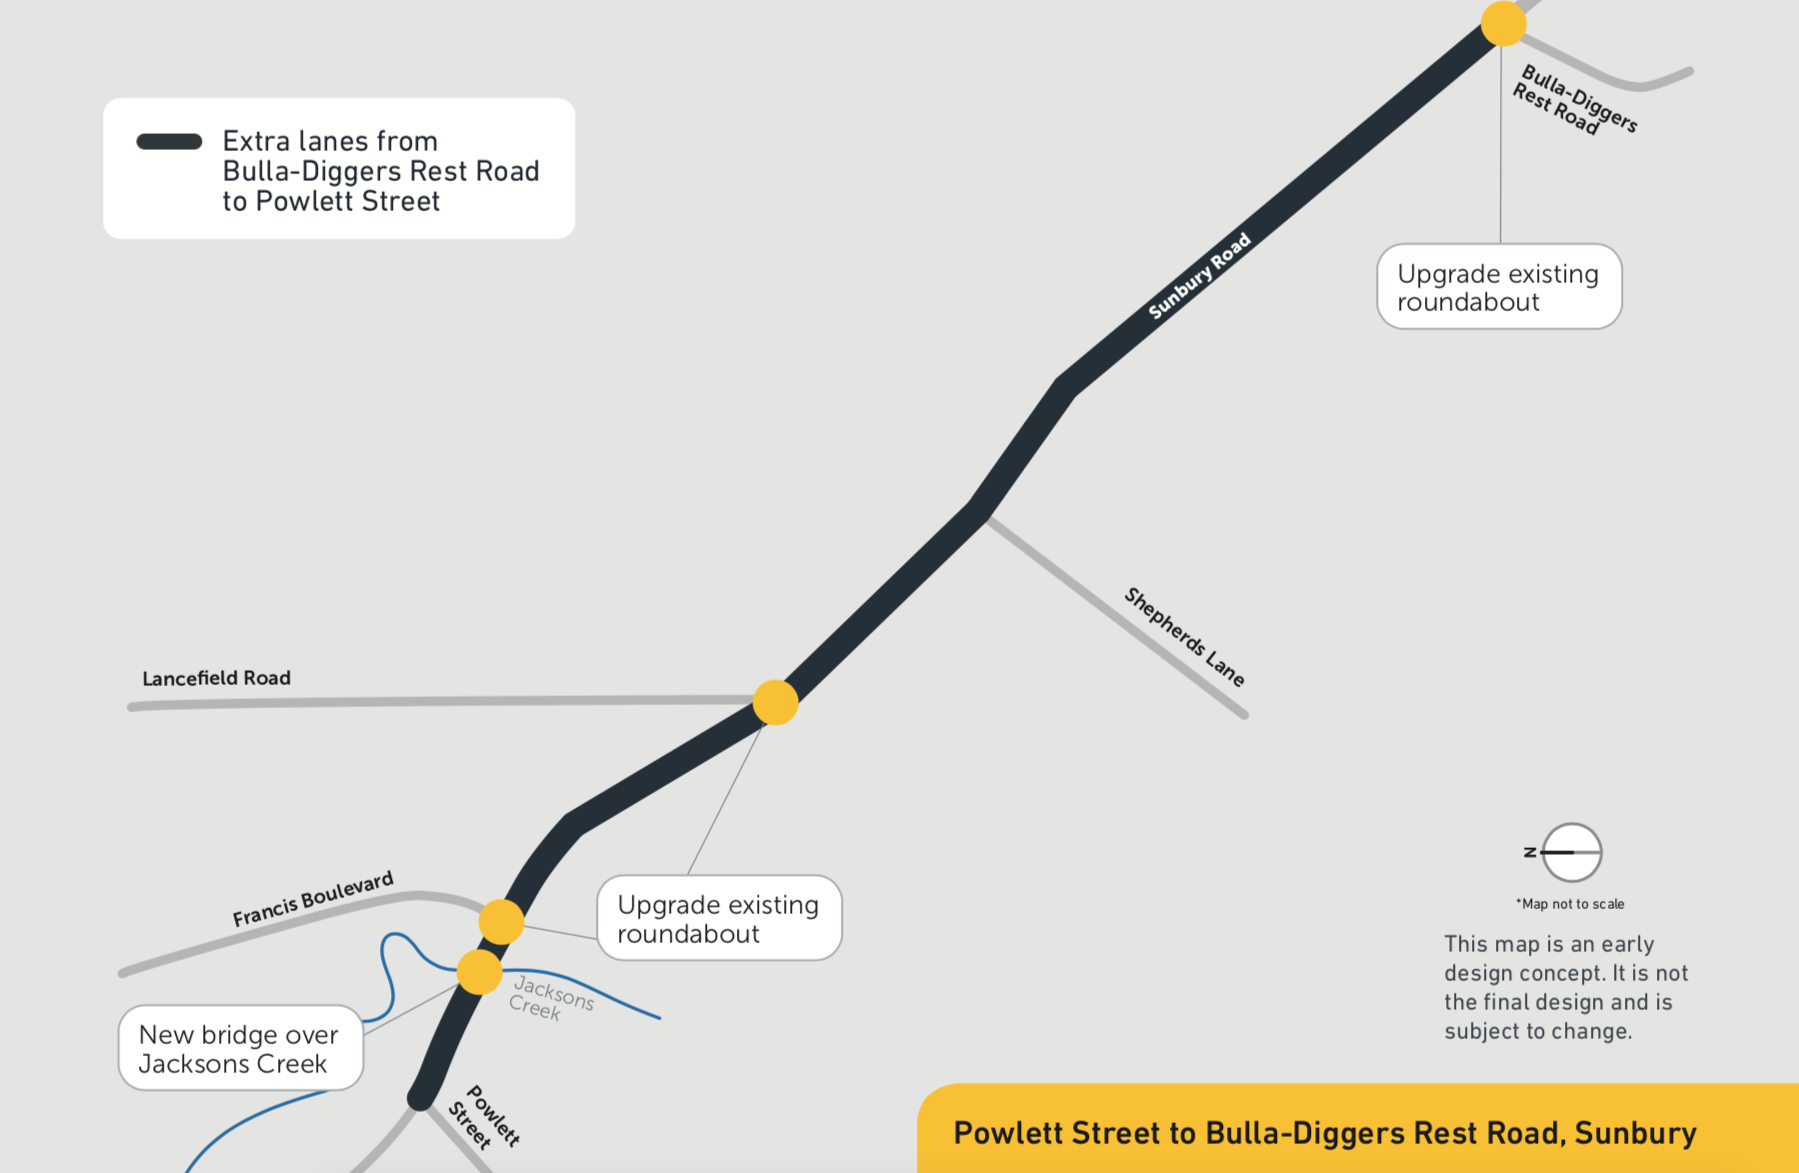 As part of the upgrade, we plan to: add an extra lane in each direction between Powlett Street and Bulla- Diggers Rest Road upgrade roundabouts at Francis Boulevard, Lancefield Road and Bulla-Diggers Rest Road build new bridge over Jacksons Creek, including path provisions, and upgrade one existing bridge install safety barriers along the road.